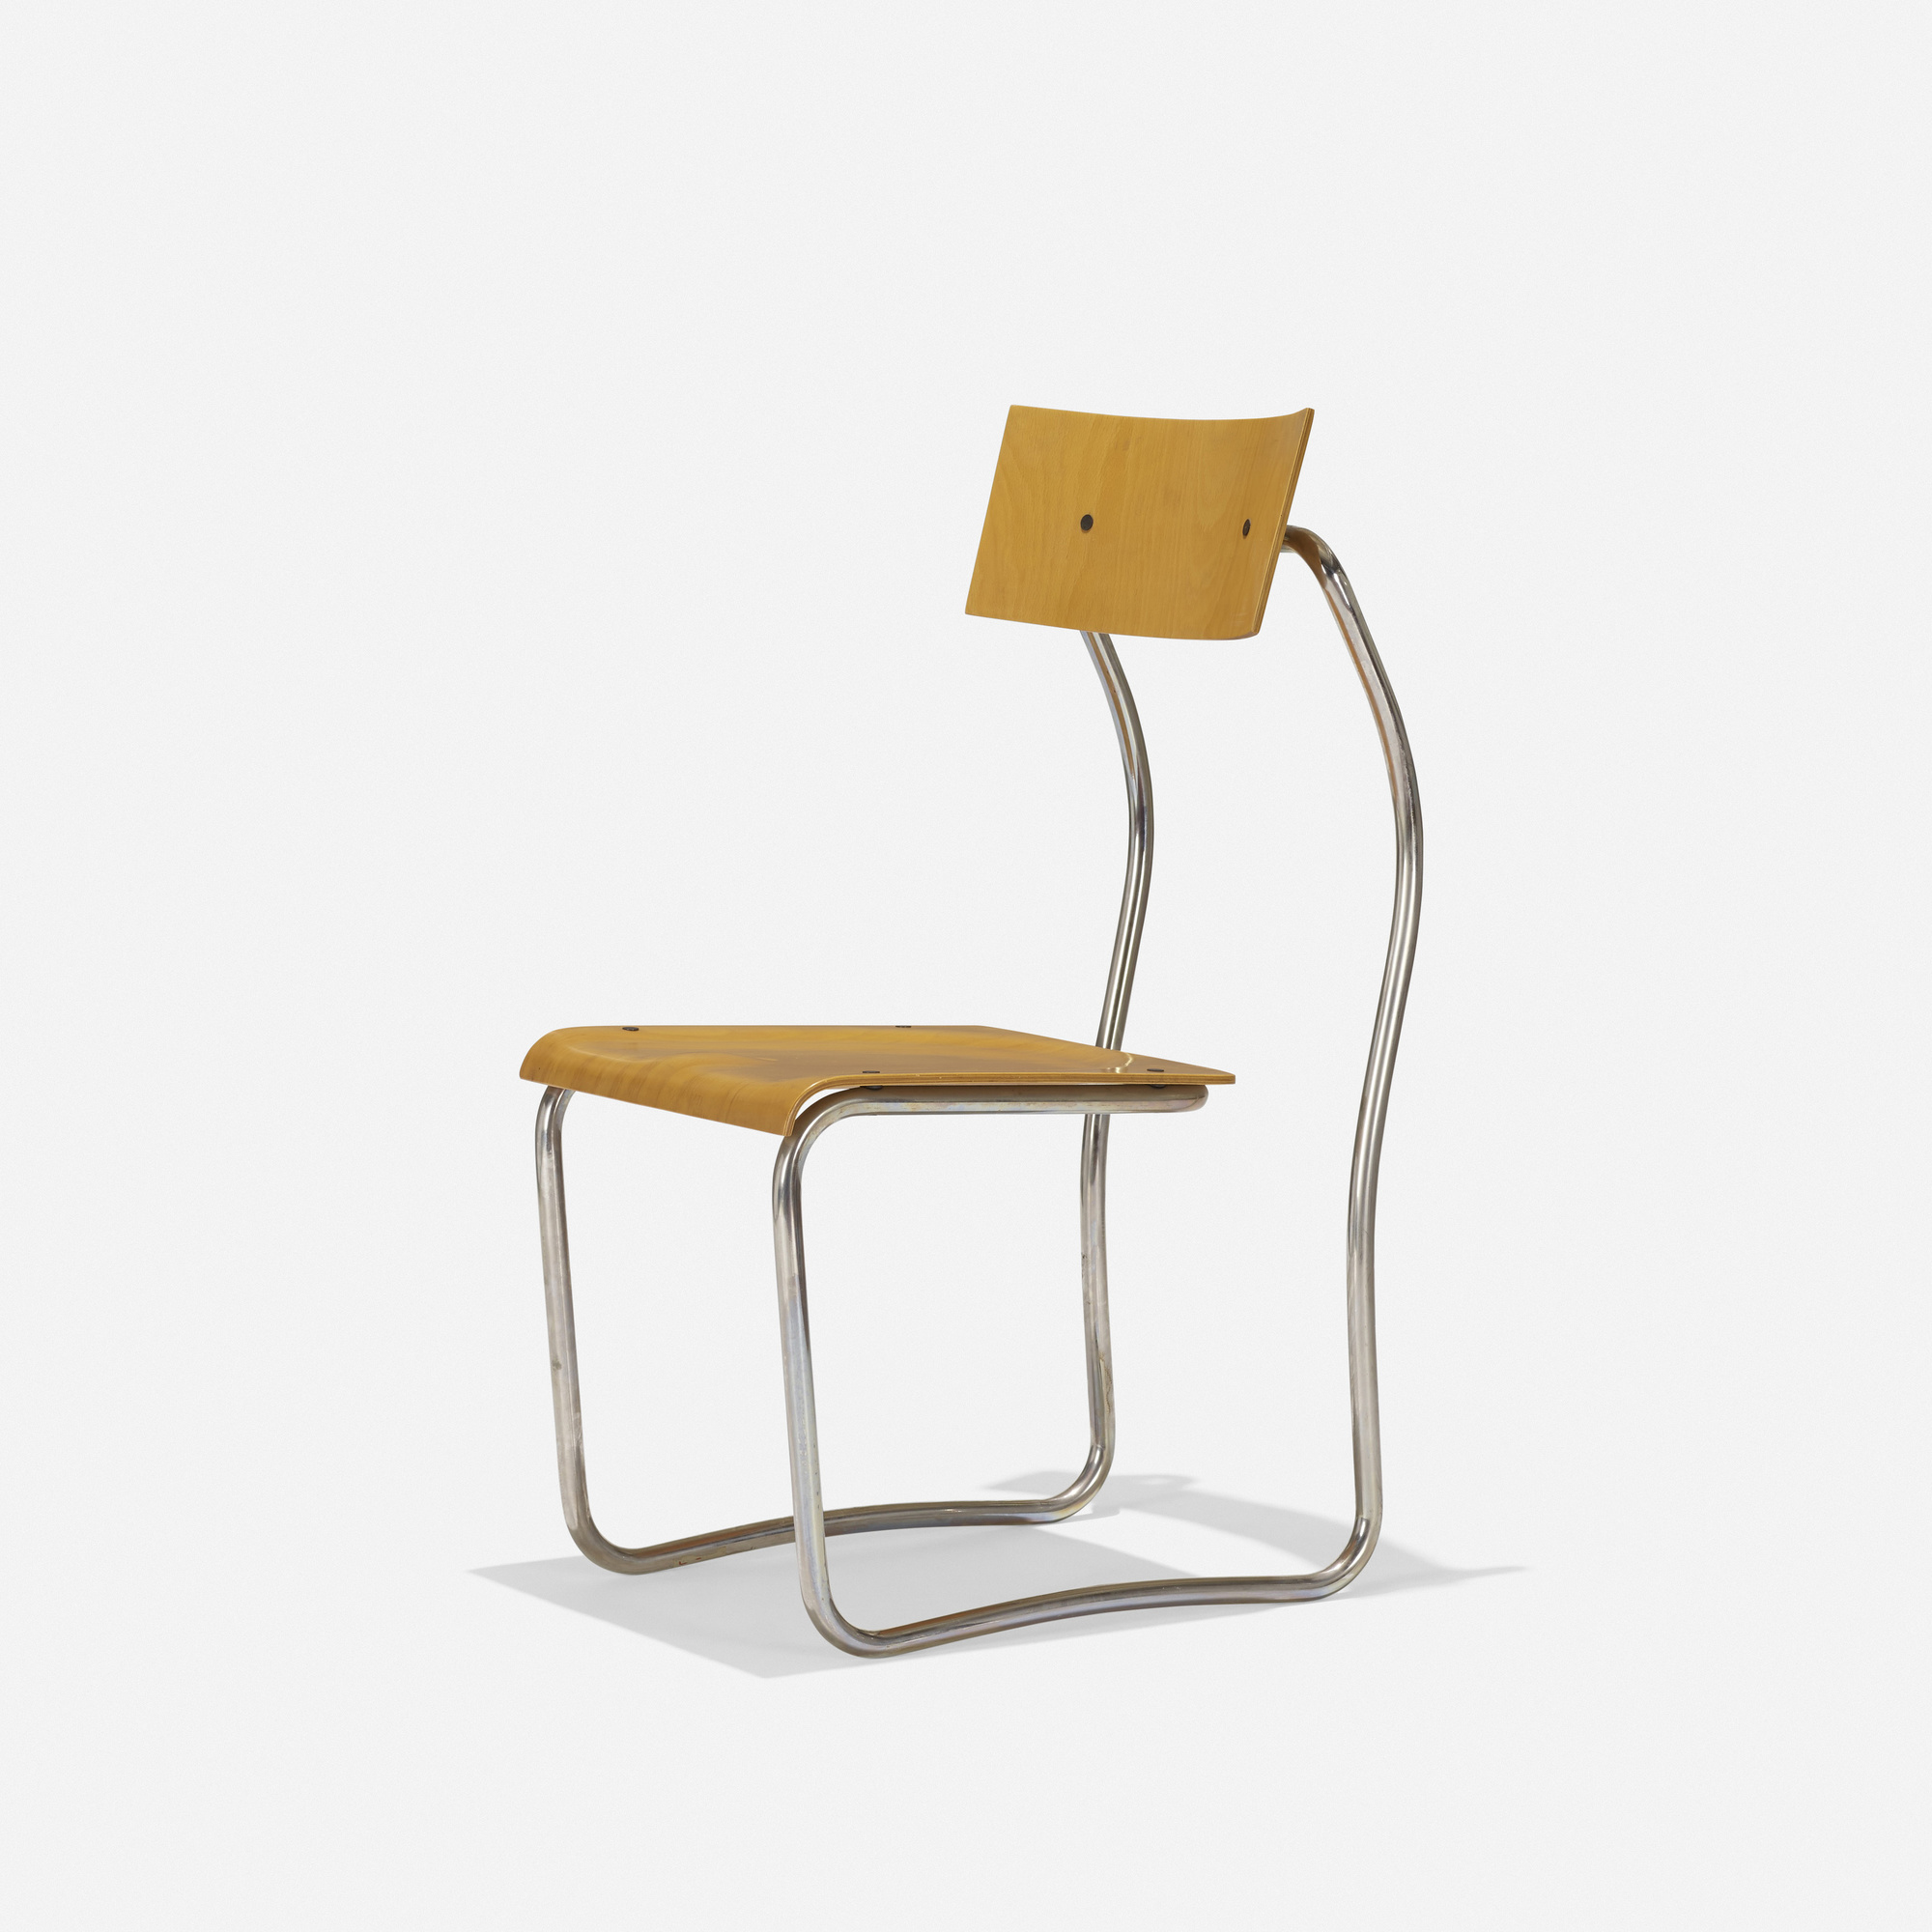 348: Giuseppe Terragni / Lariana chair (2 of 3)